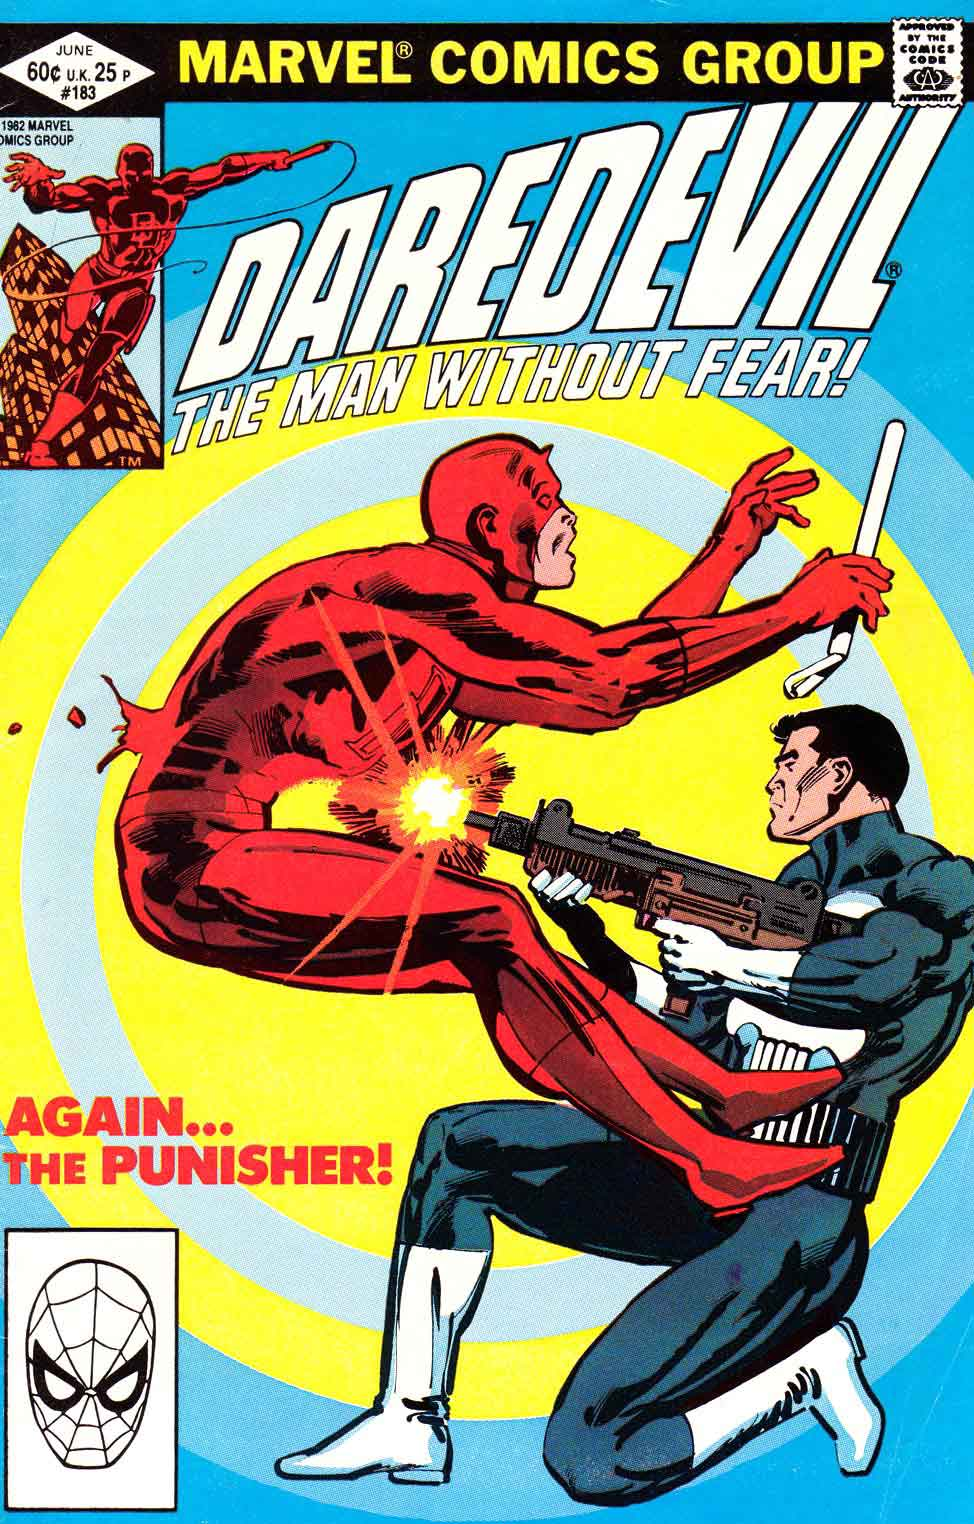 Comic Book Cover Drawing ~ Daredevil frank miller art cover pencil ink